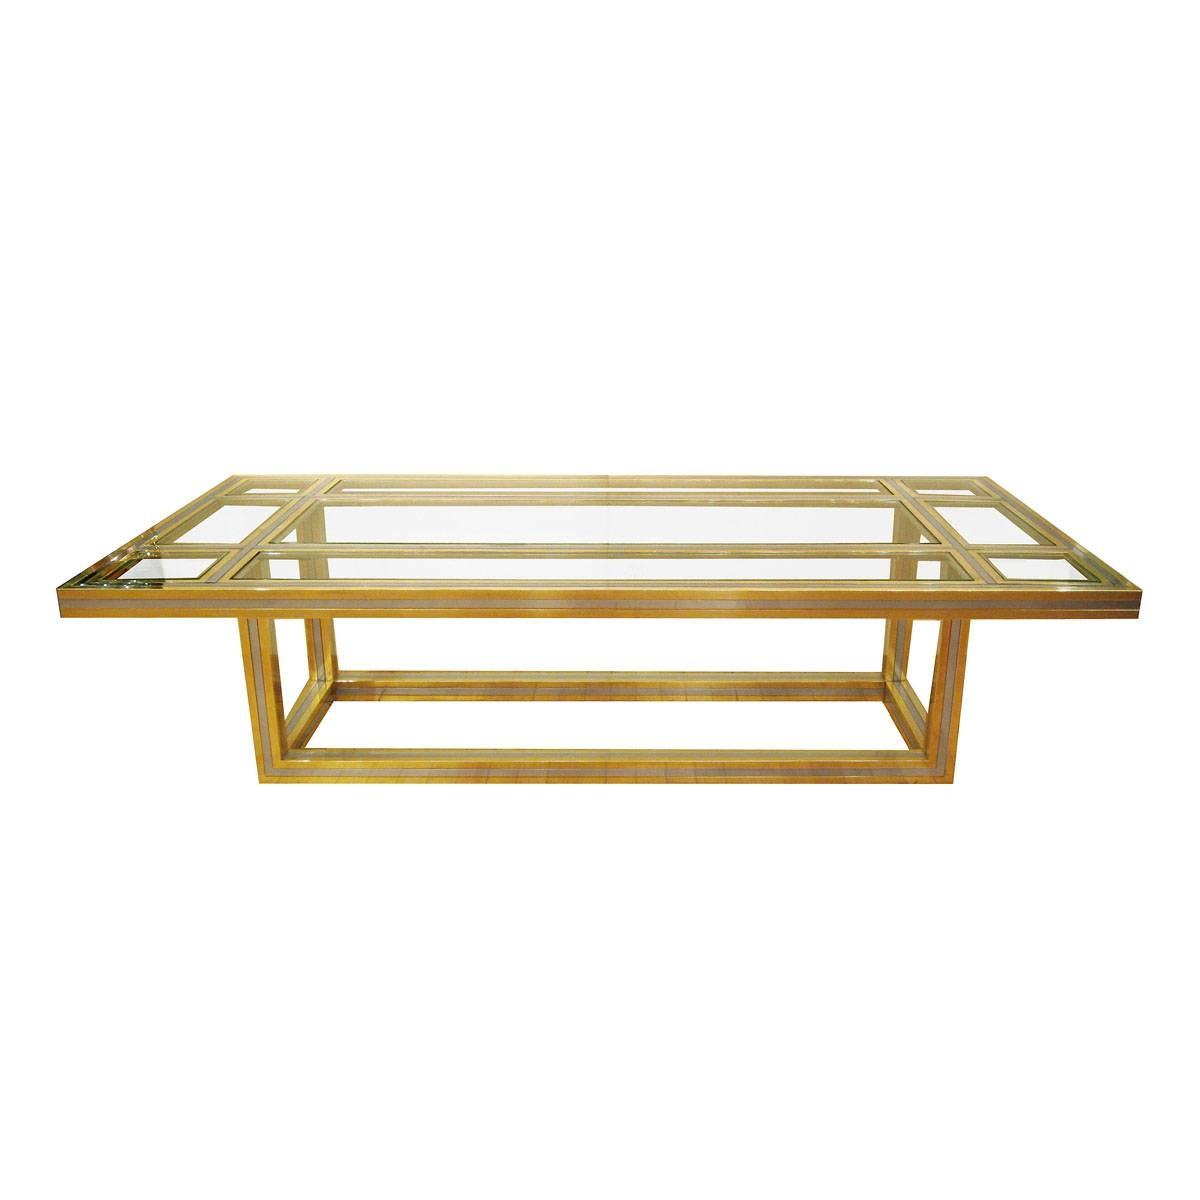 Brass And Stainless Steel Coffee Table With Glass Insets | Coffee in Glass Steel Coffee Tables (Image 3 of 30)